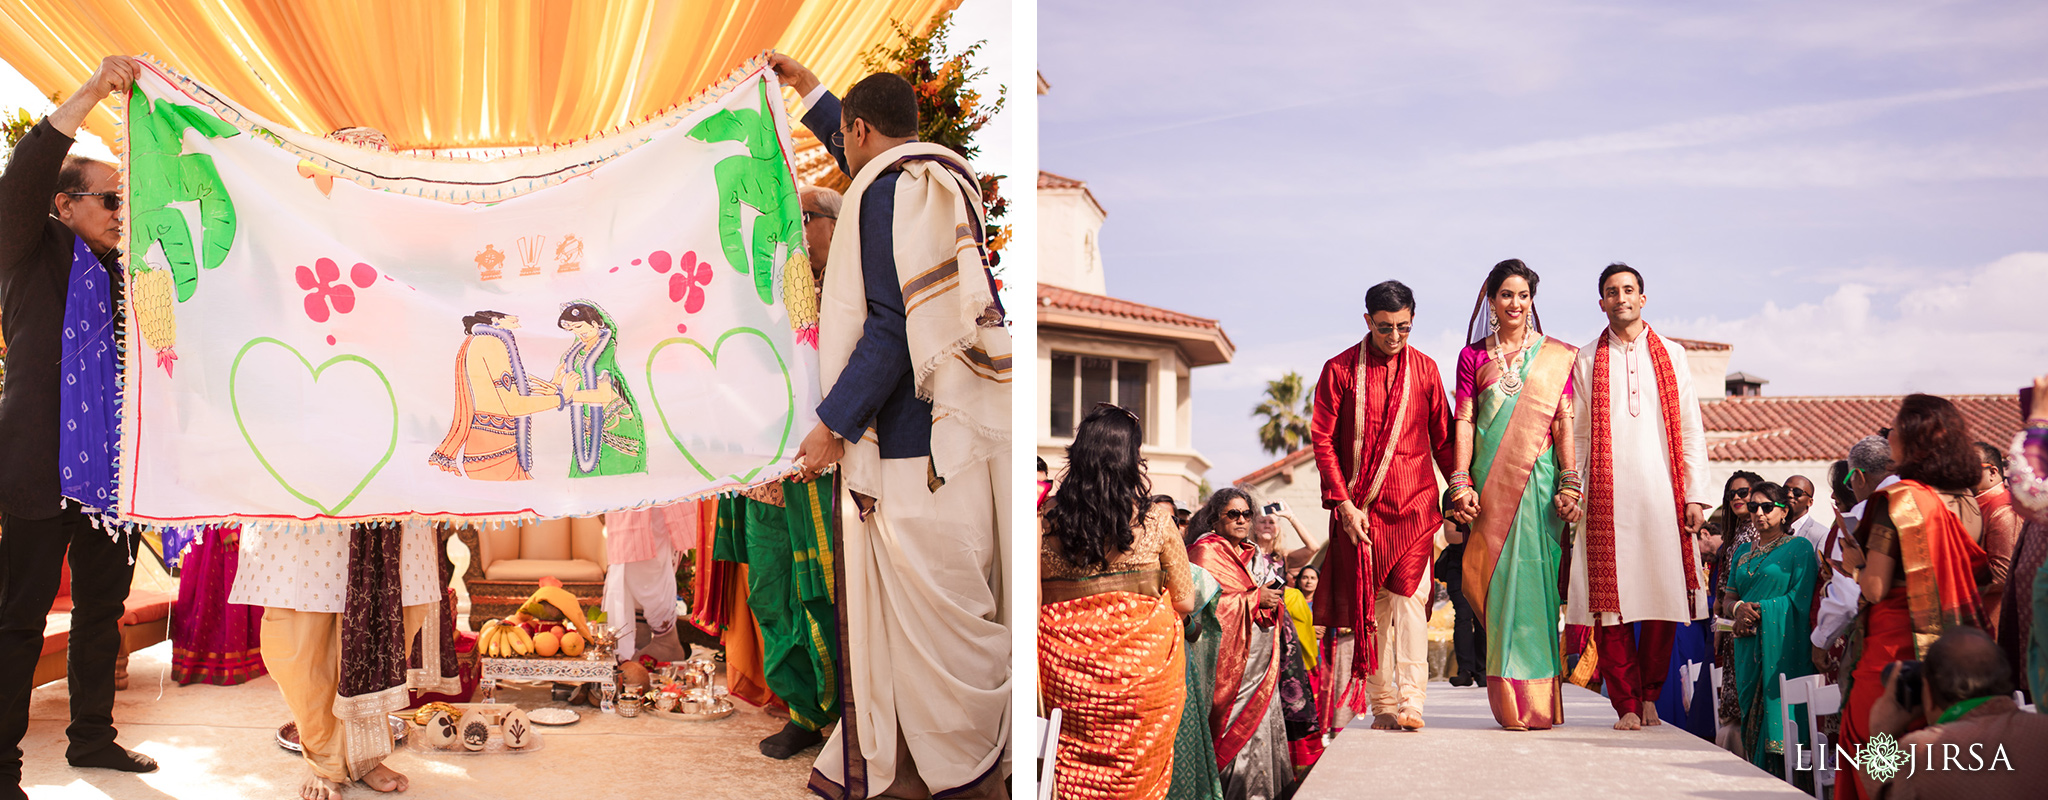 15 Hyatt Regency Huntington Beach Indian Wedding Photography